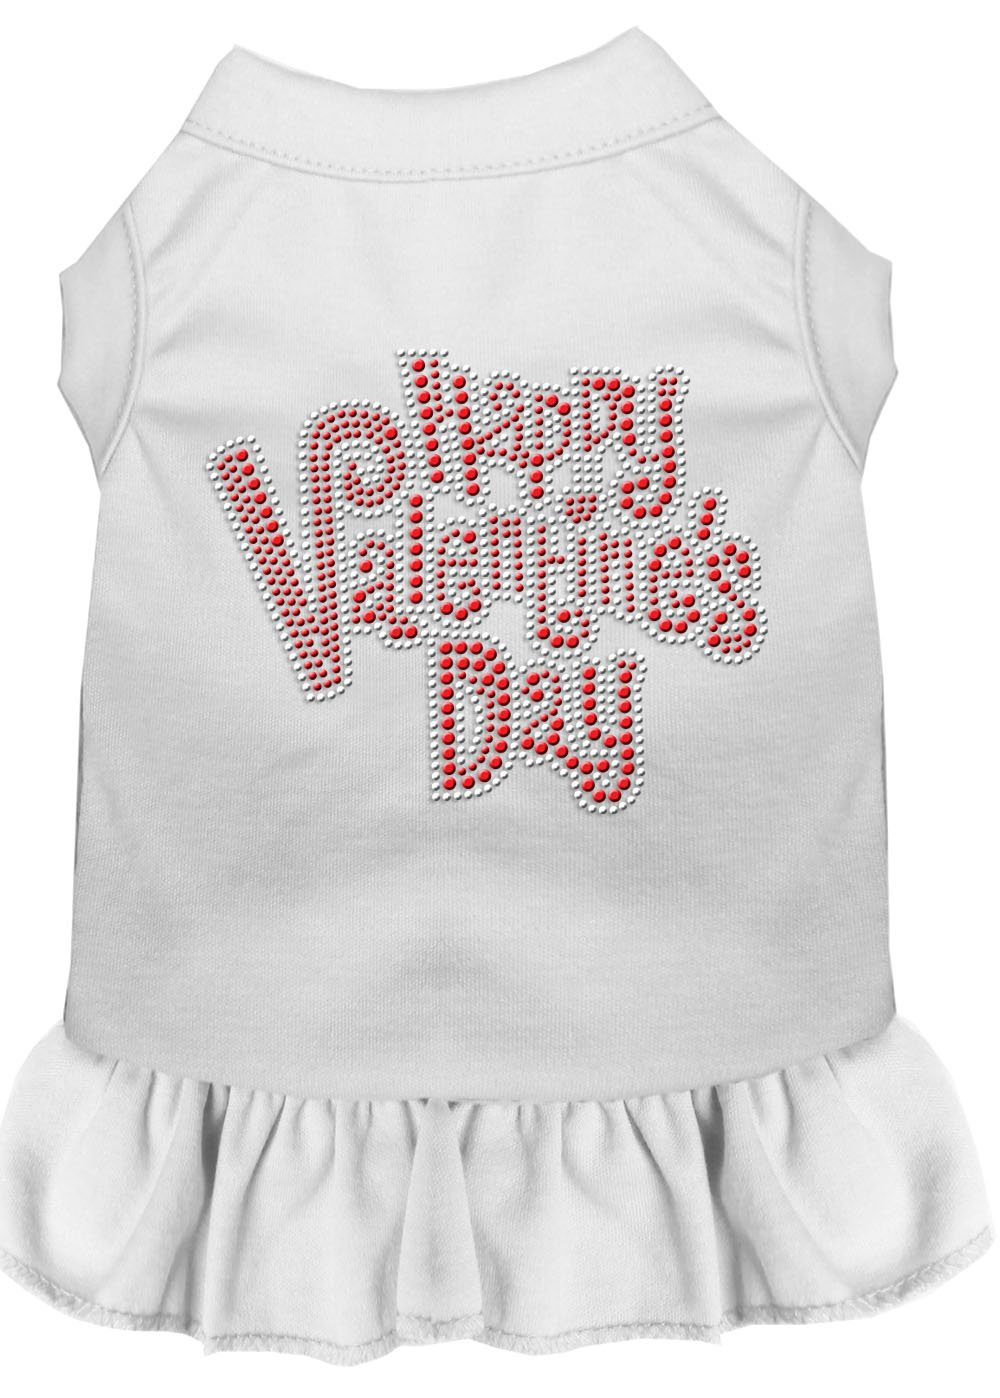 Mirage Pet Products 57-56 LGWT White Happy Valentines Day Rhinestone Dress, Large